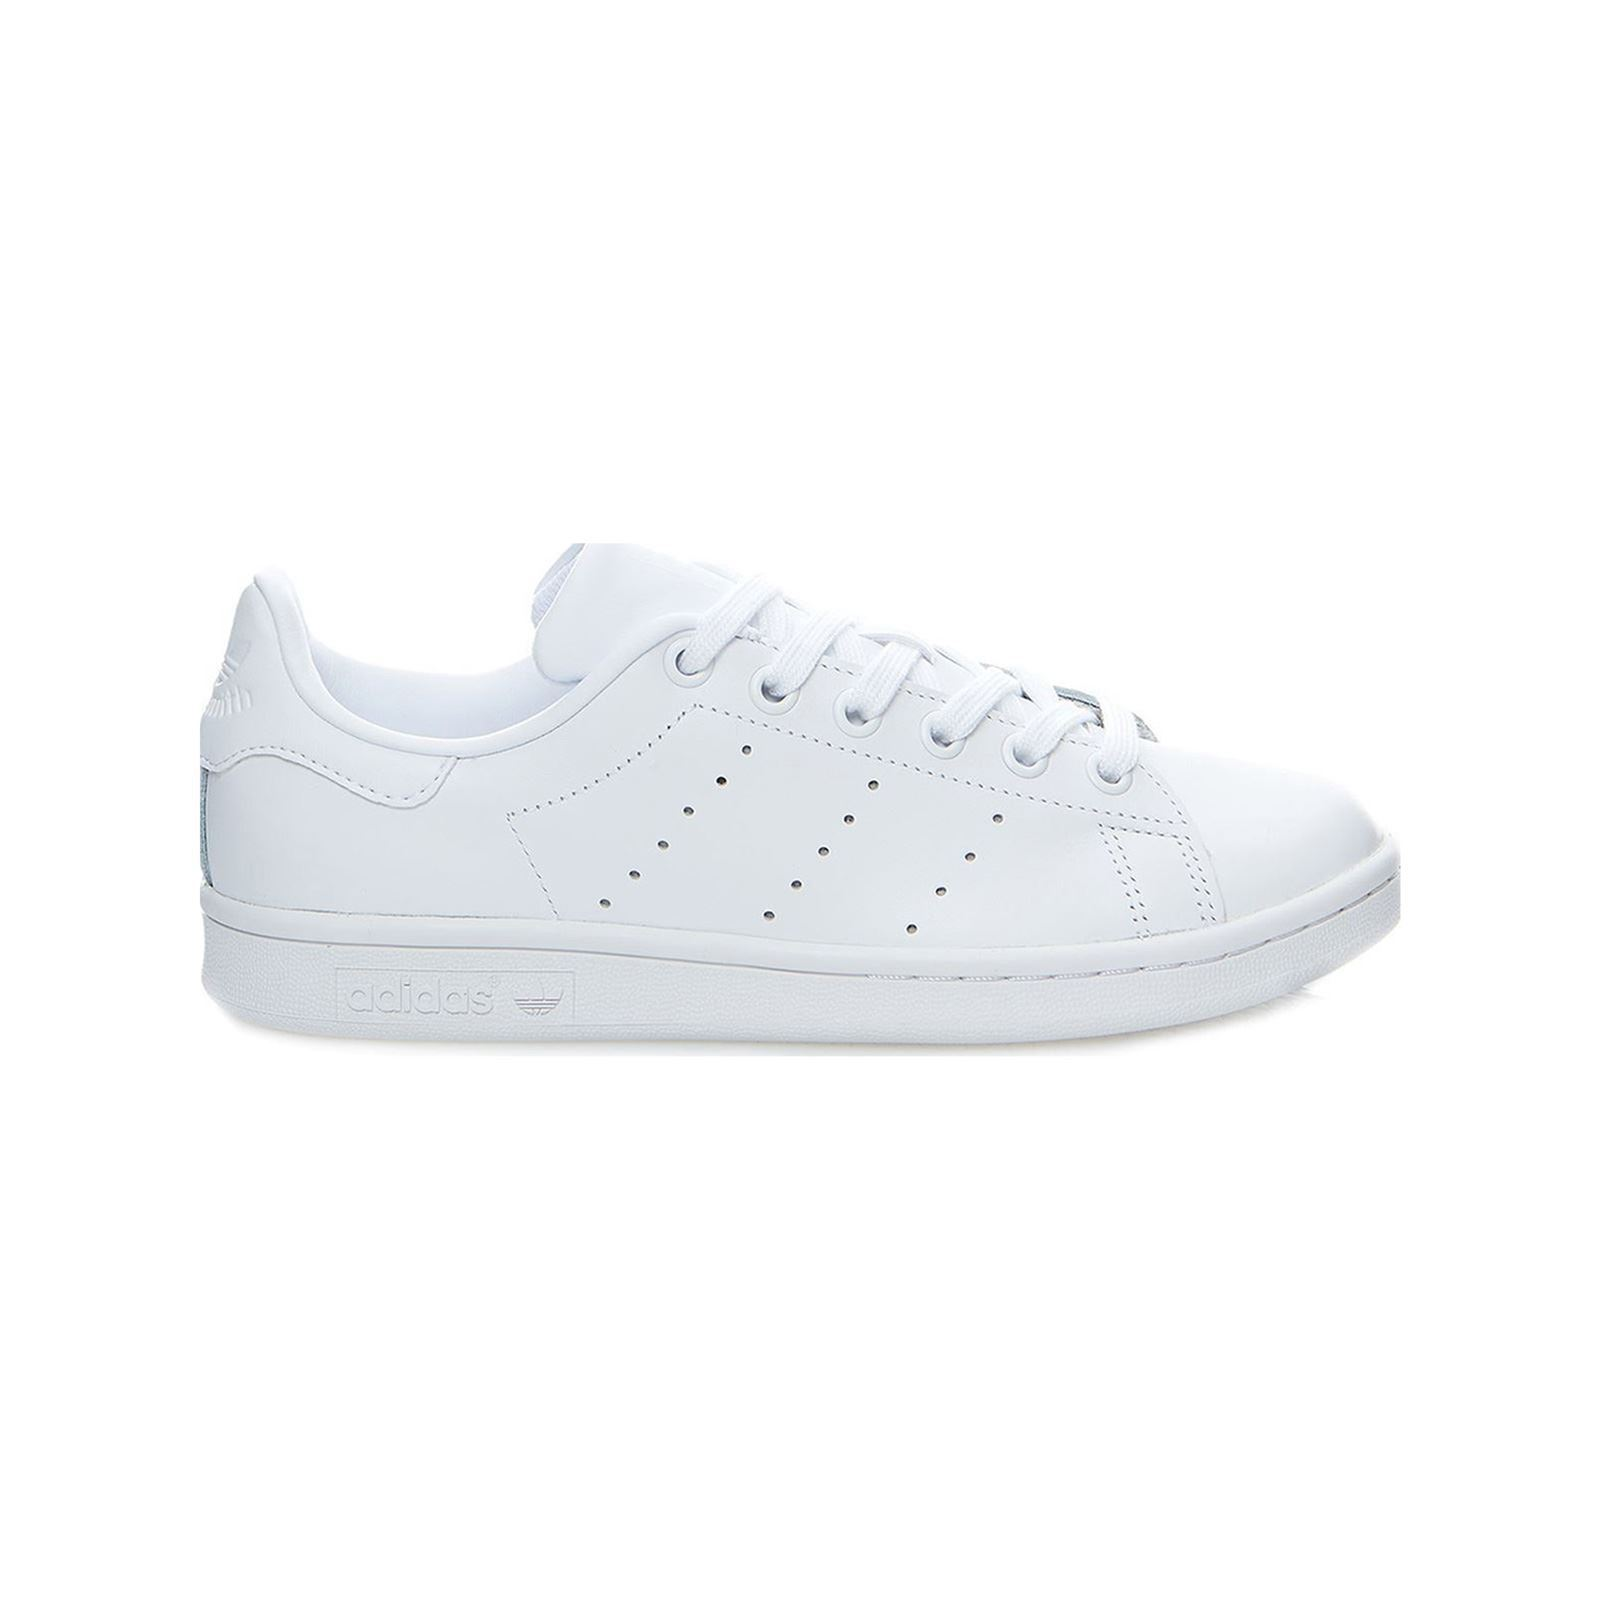 cheap for discount 6e870 cb221 Stan Smith - Turnschuhe, Sneakers - weiß